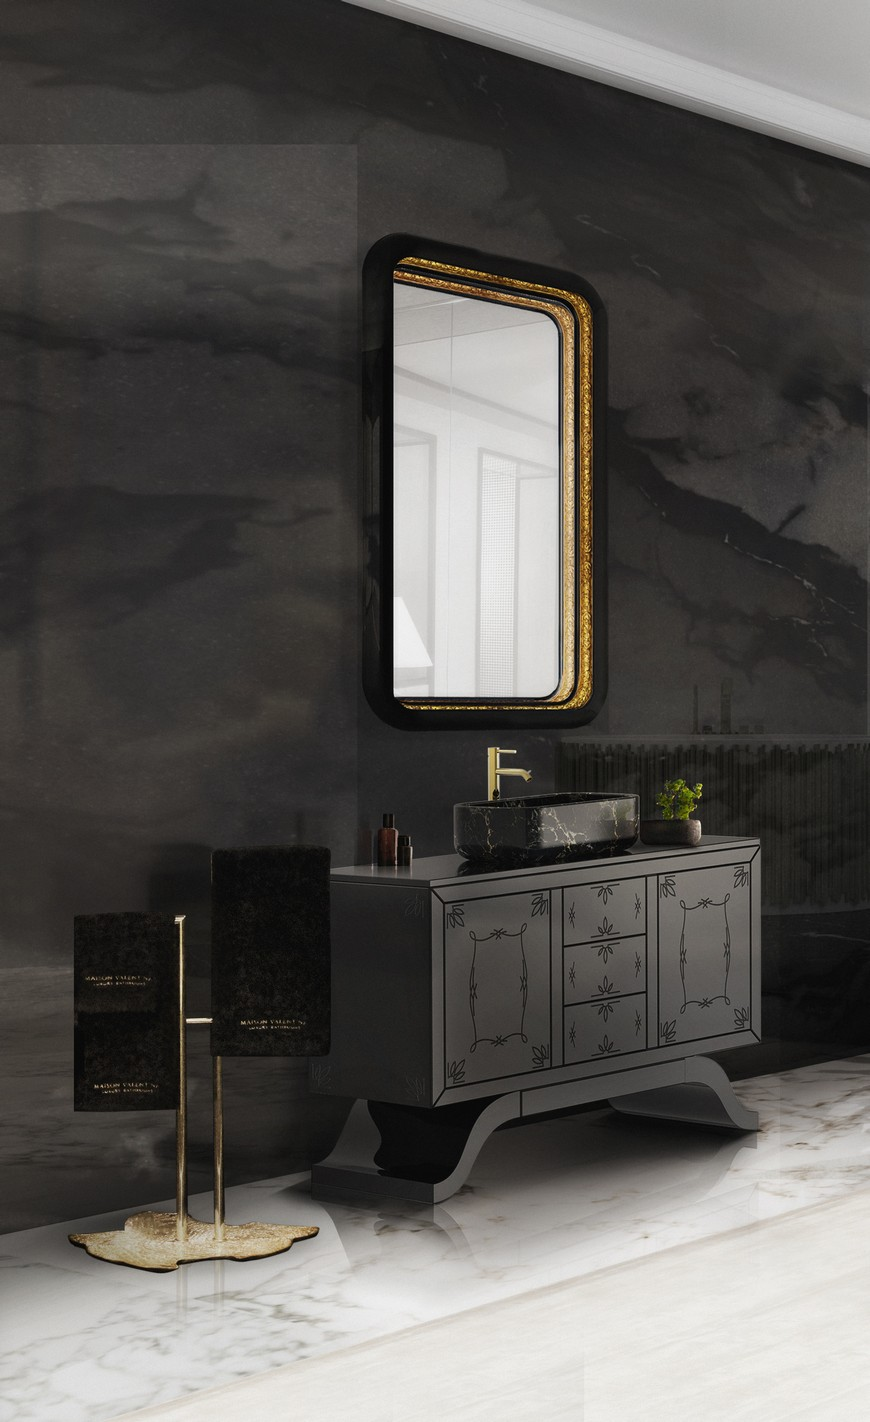 Stunning Matte Black Bathroom Vanities For Your Design Project black bathroom vanities Stunning Matte Black Bathroom Vanities For Your Design Project Stunning Matte Black Bathroom Vanities For Your Design Project 3